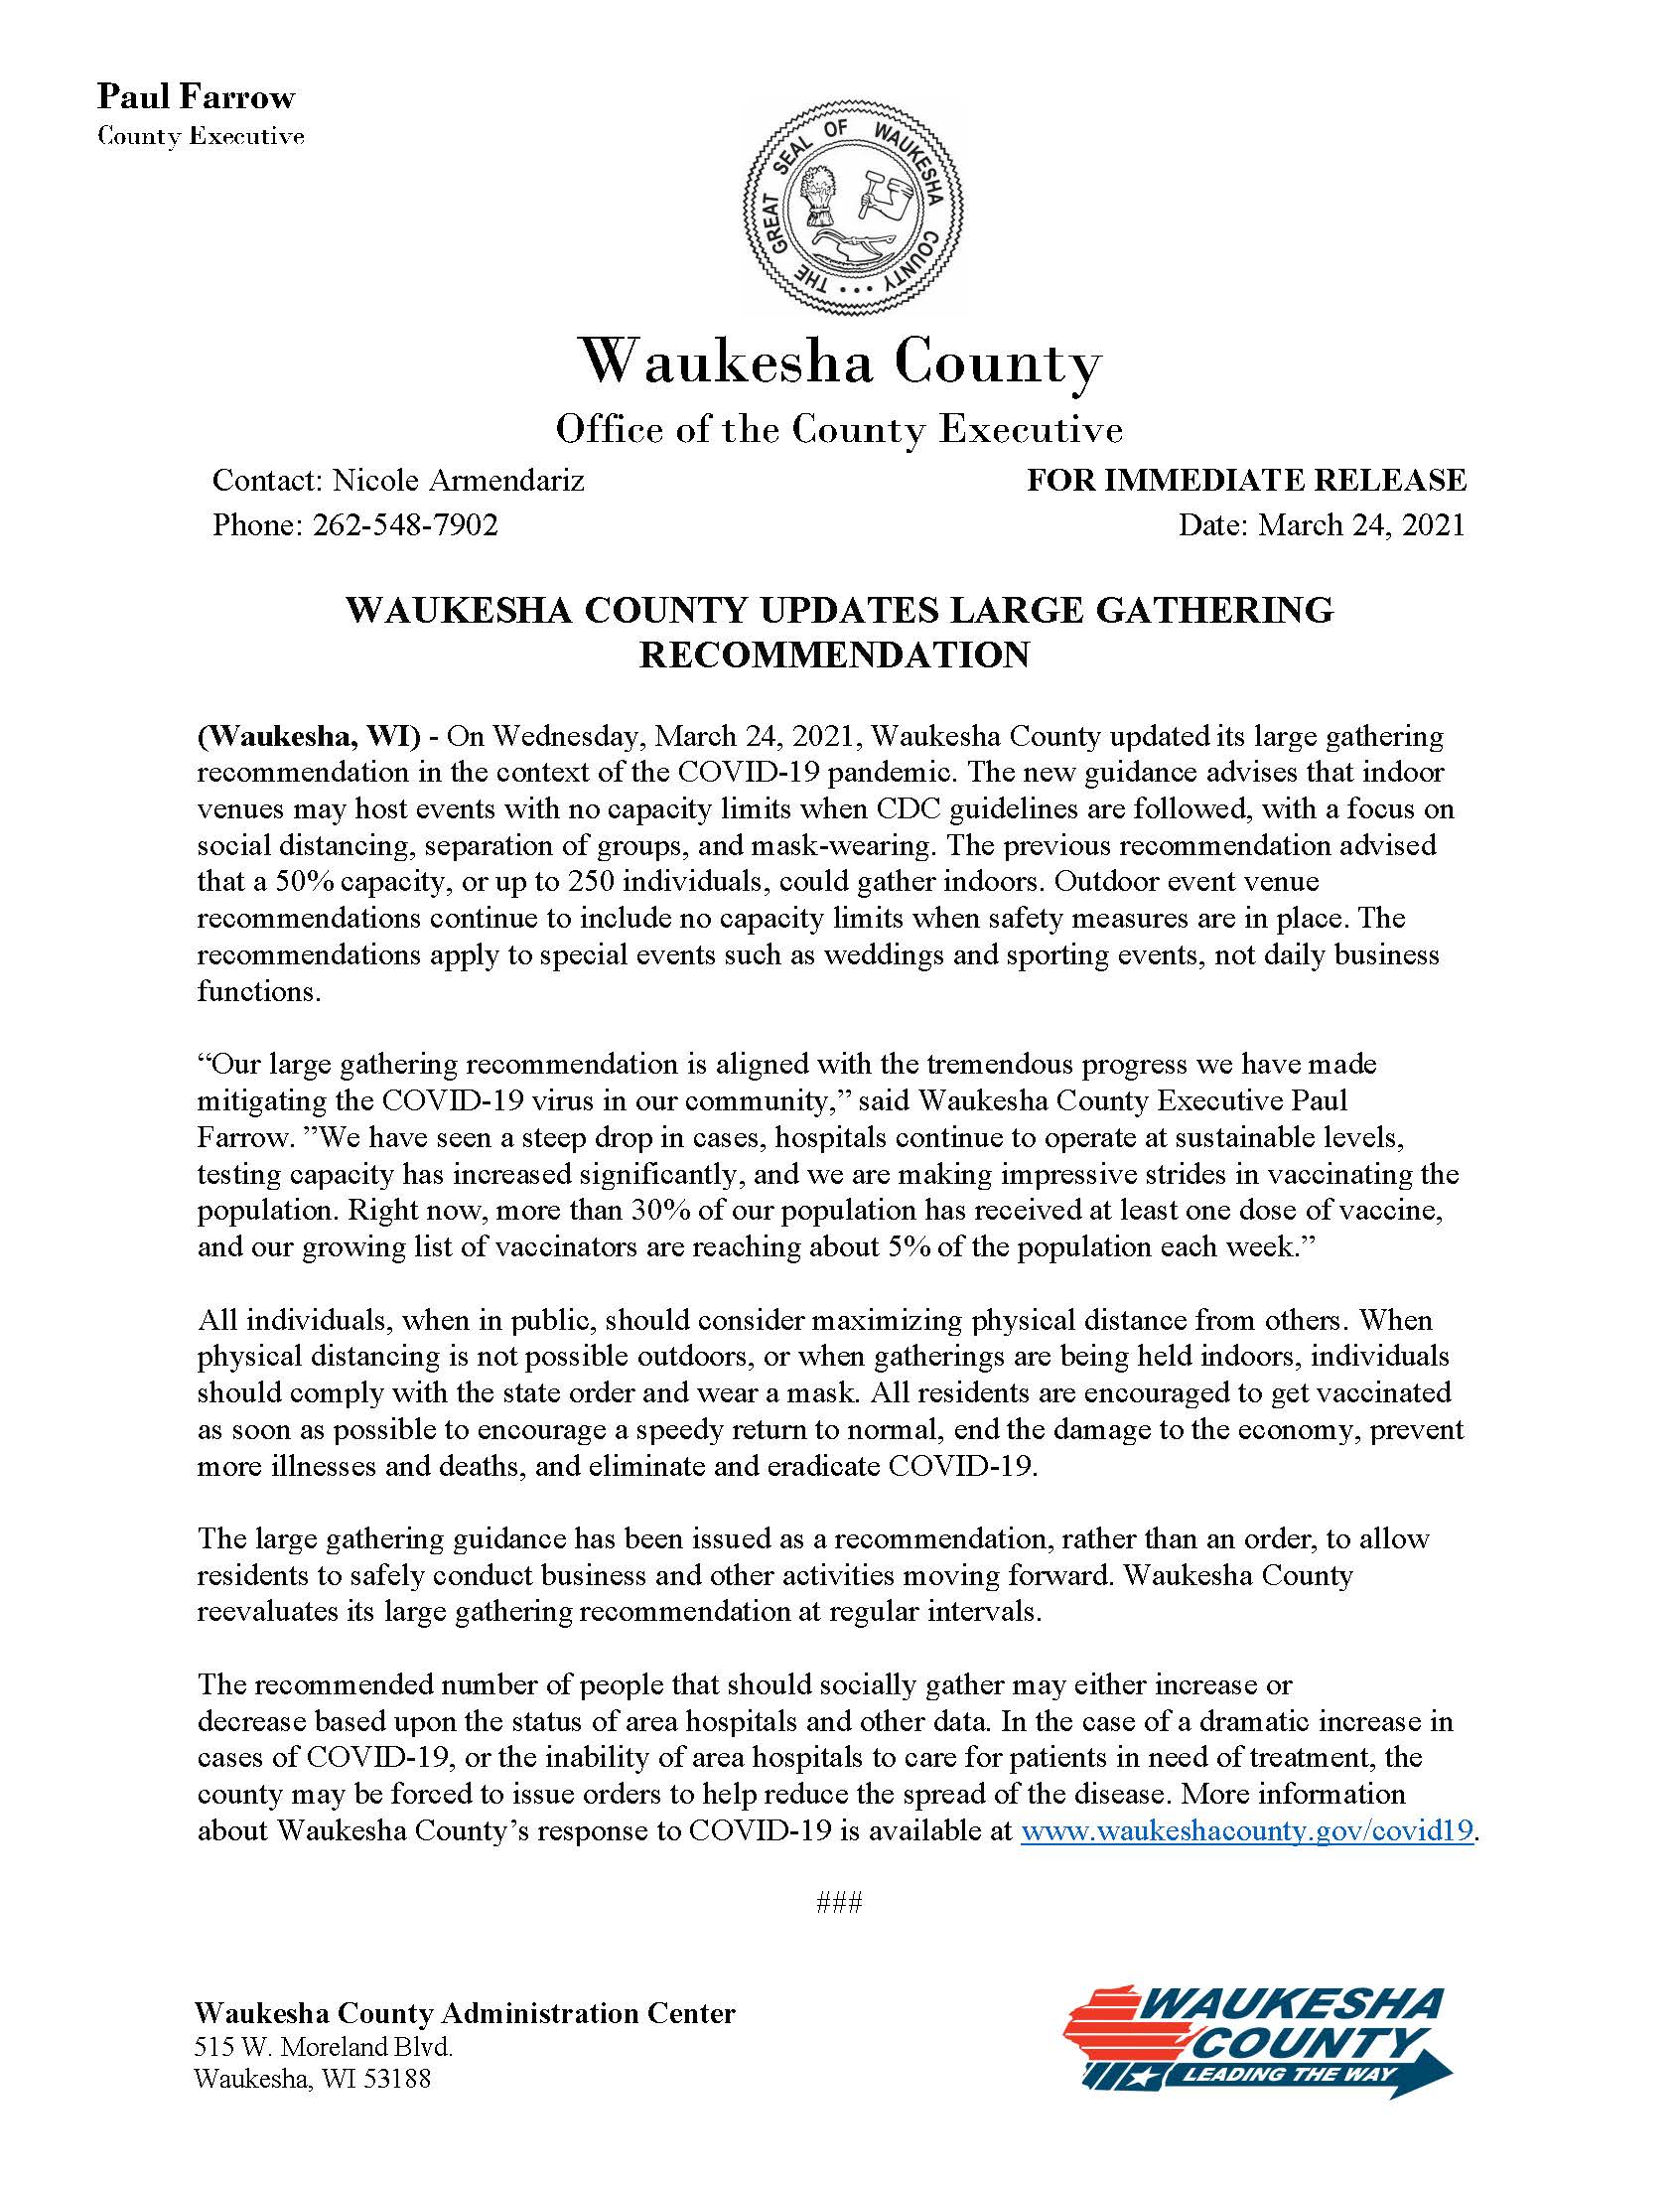 waukesha-county-large-gathering-update-news-release